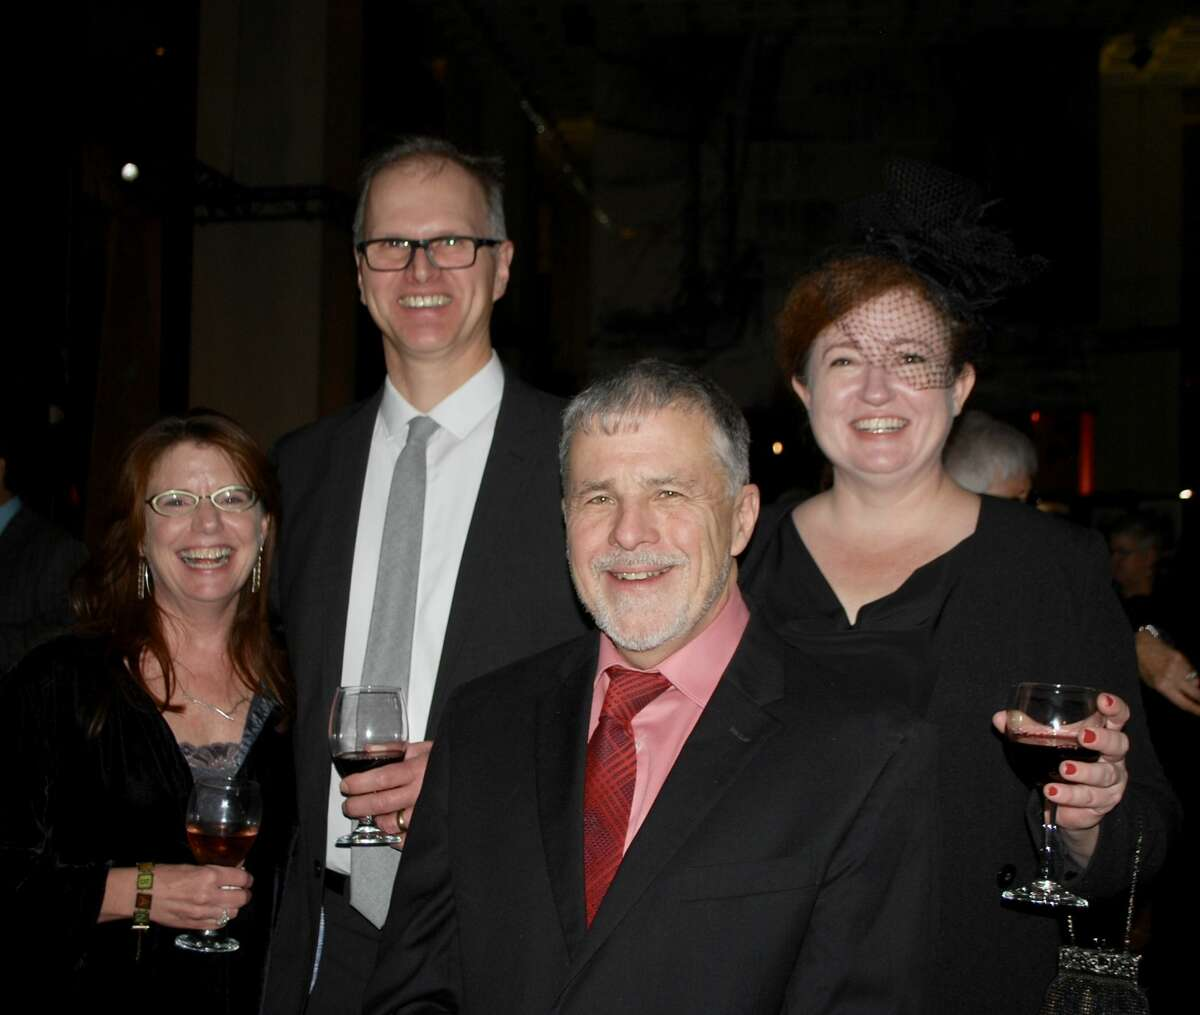 Caption: Were you Seen at 'Built: Albany's Architecture through Artists' Eyes,' a fundraiser for Historic Albany Foundation, at the New York State Museum in Albany on Nov. 3, 2018?